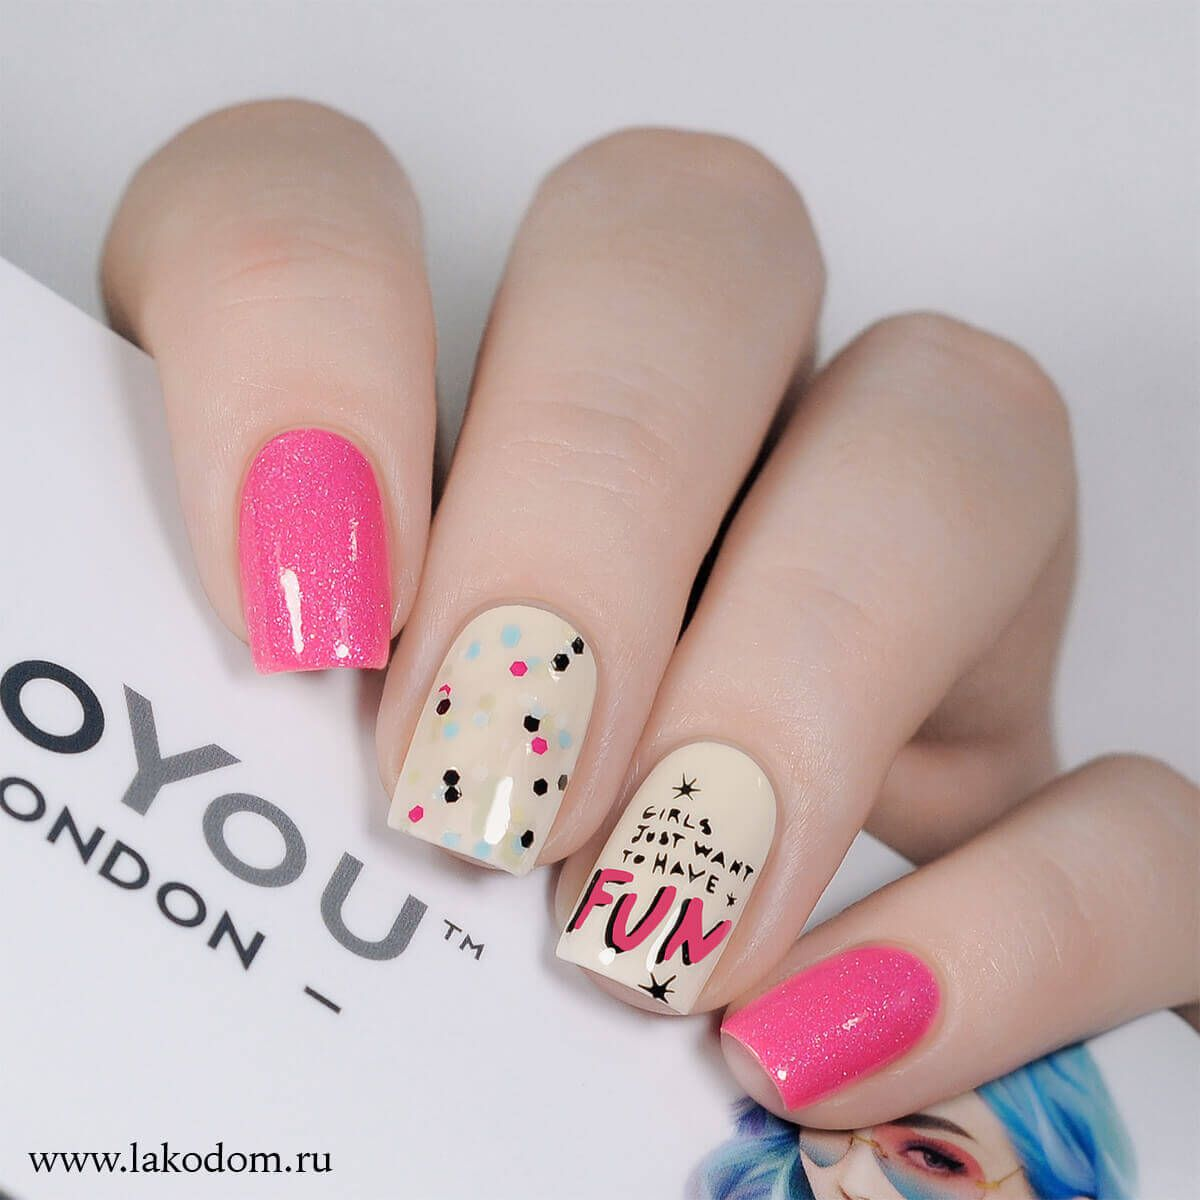 diseños de uñas juveniles | Nails | Pinterest | Manicure ideas and ...